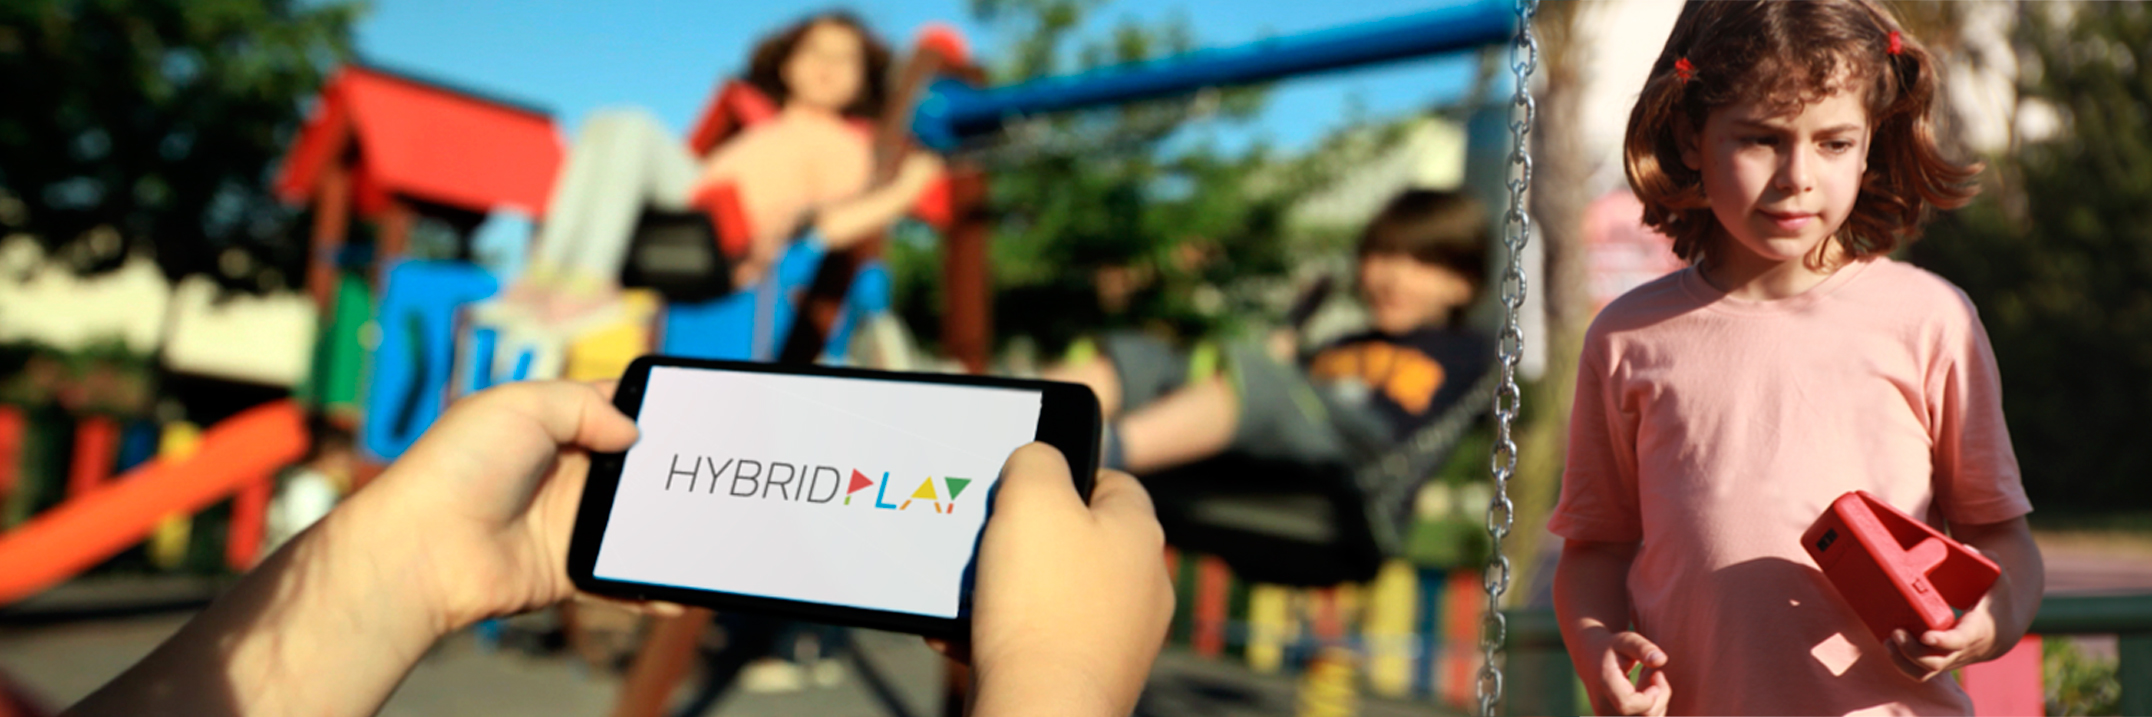 Hybrid Play - Transforming playgrounds into videogames!